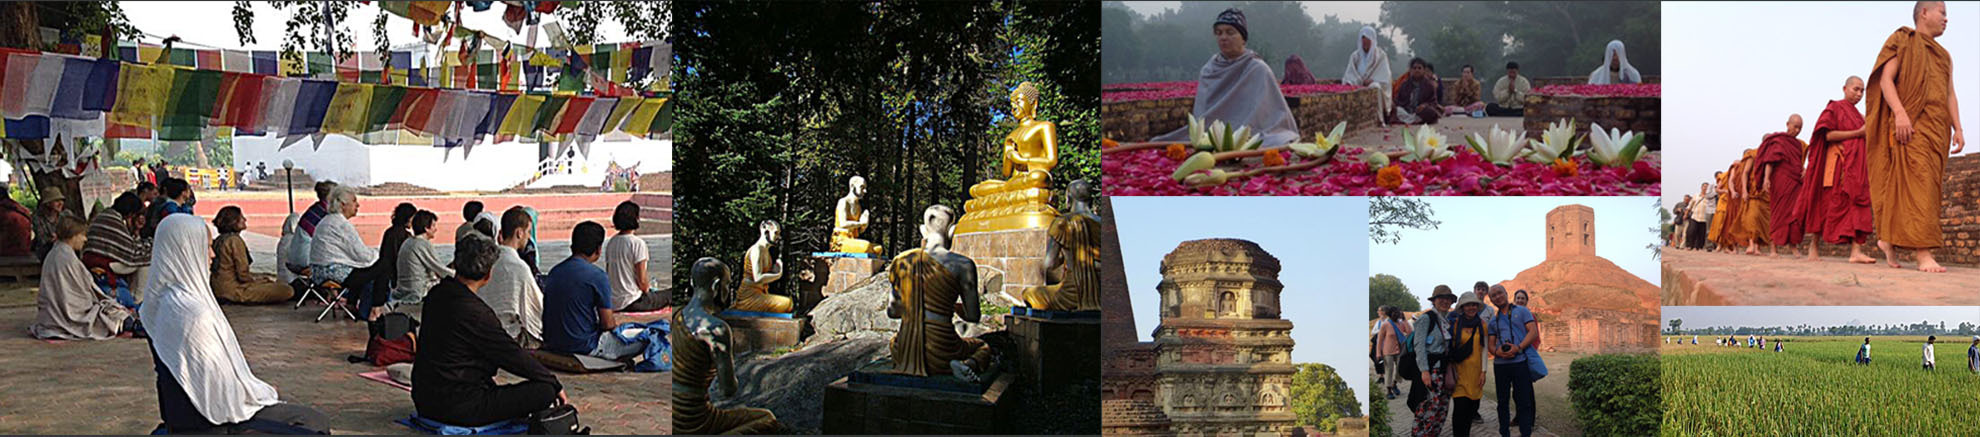 Collage Pariyatti Pilgrimage Images